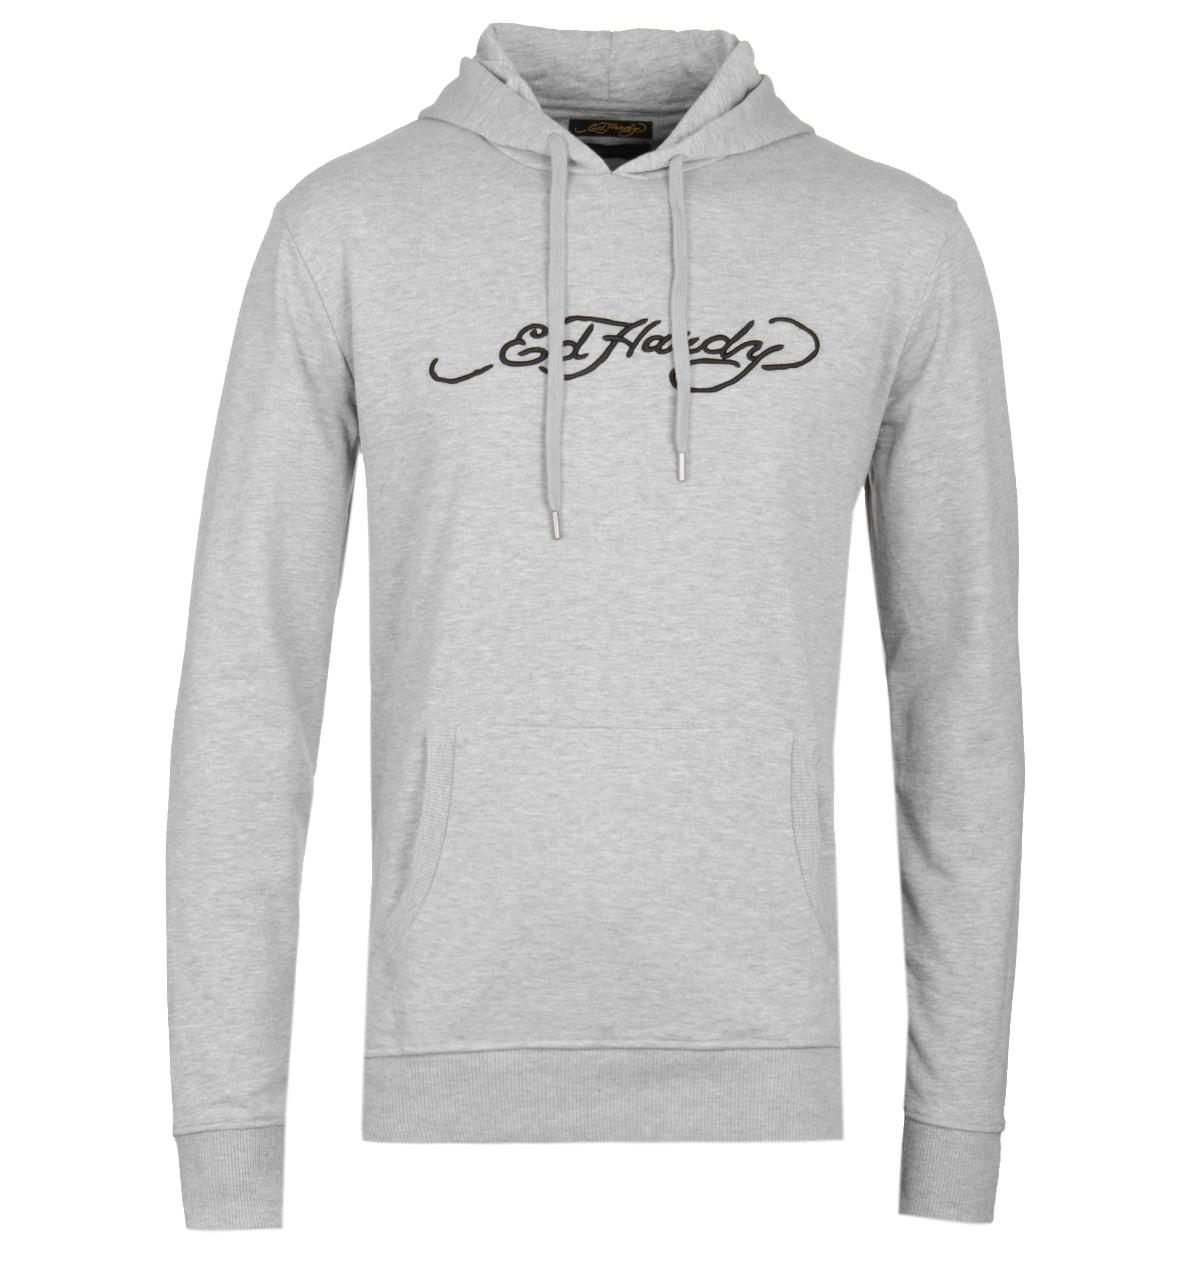 612fe8727 Lyst - Ed Hardy Roar Japan Grey Crew Sweatshirt in Gray for Men